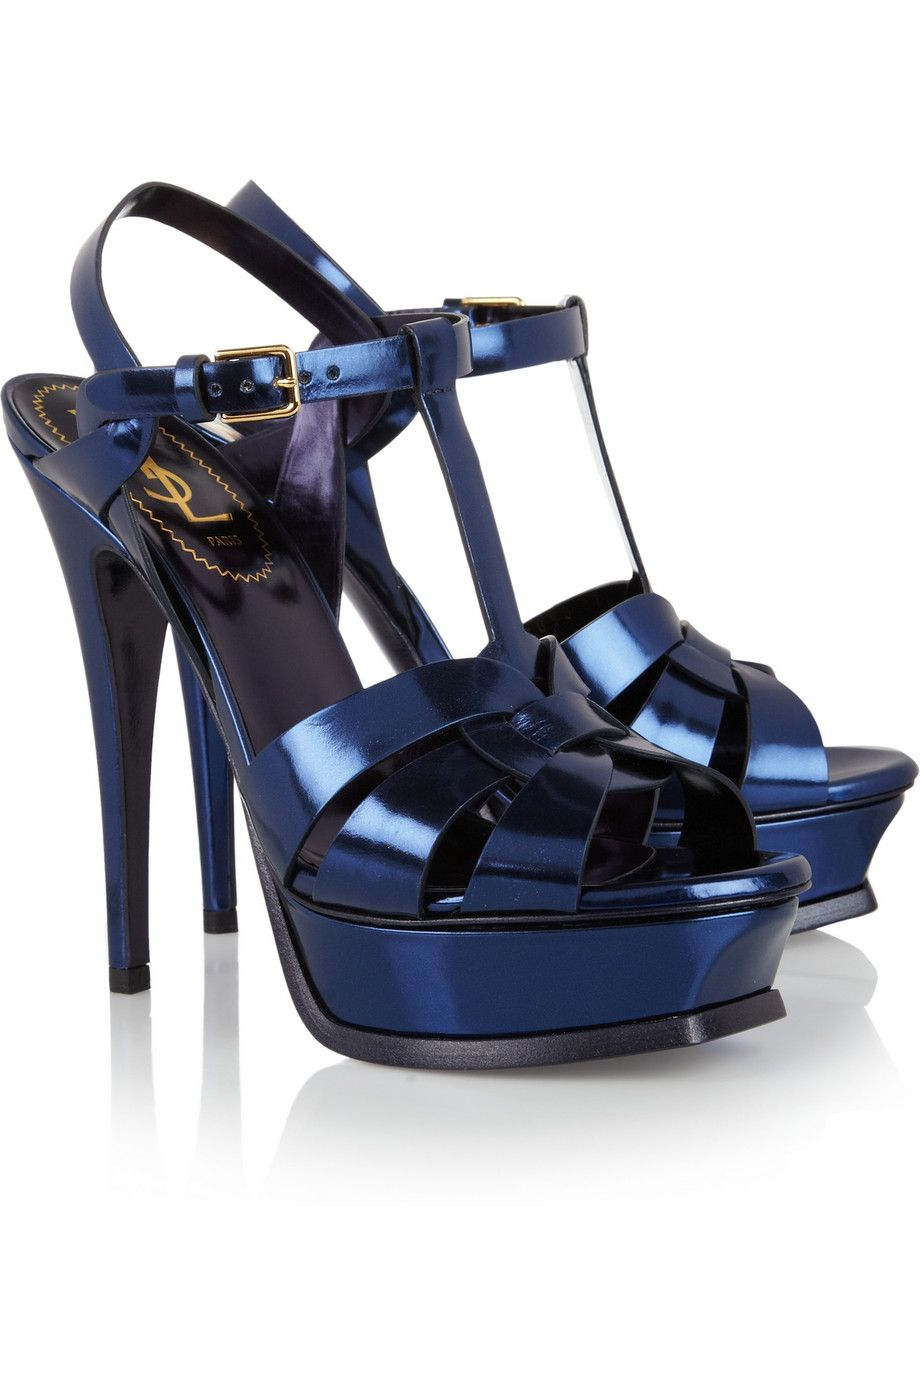 a2482f9dca1b Love these shoes and this color! Yves Saint Laurent